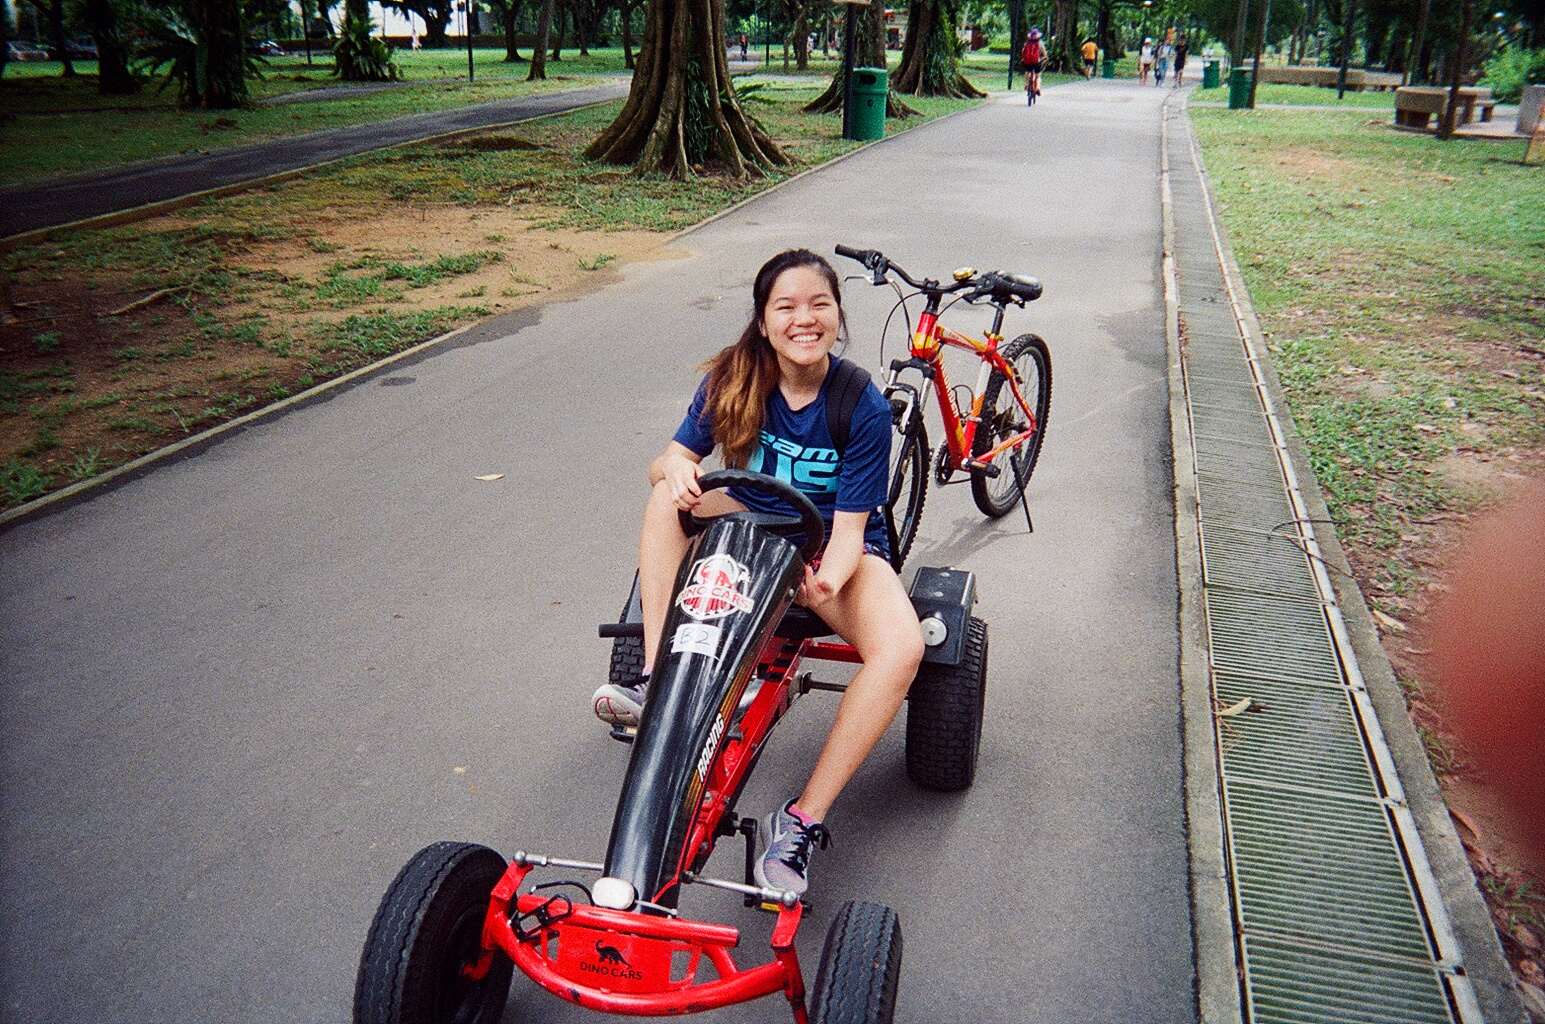 Instead of cycling, I rode this go-kart thing which proved to be quite an exercise for my legs! I also came back with bruises on my knees because the go-kart was a little short for me. I suspect it's made for young children as I'm already very short!